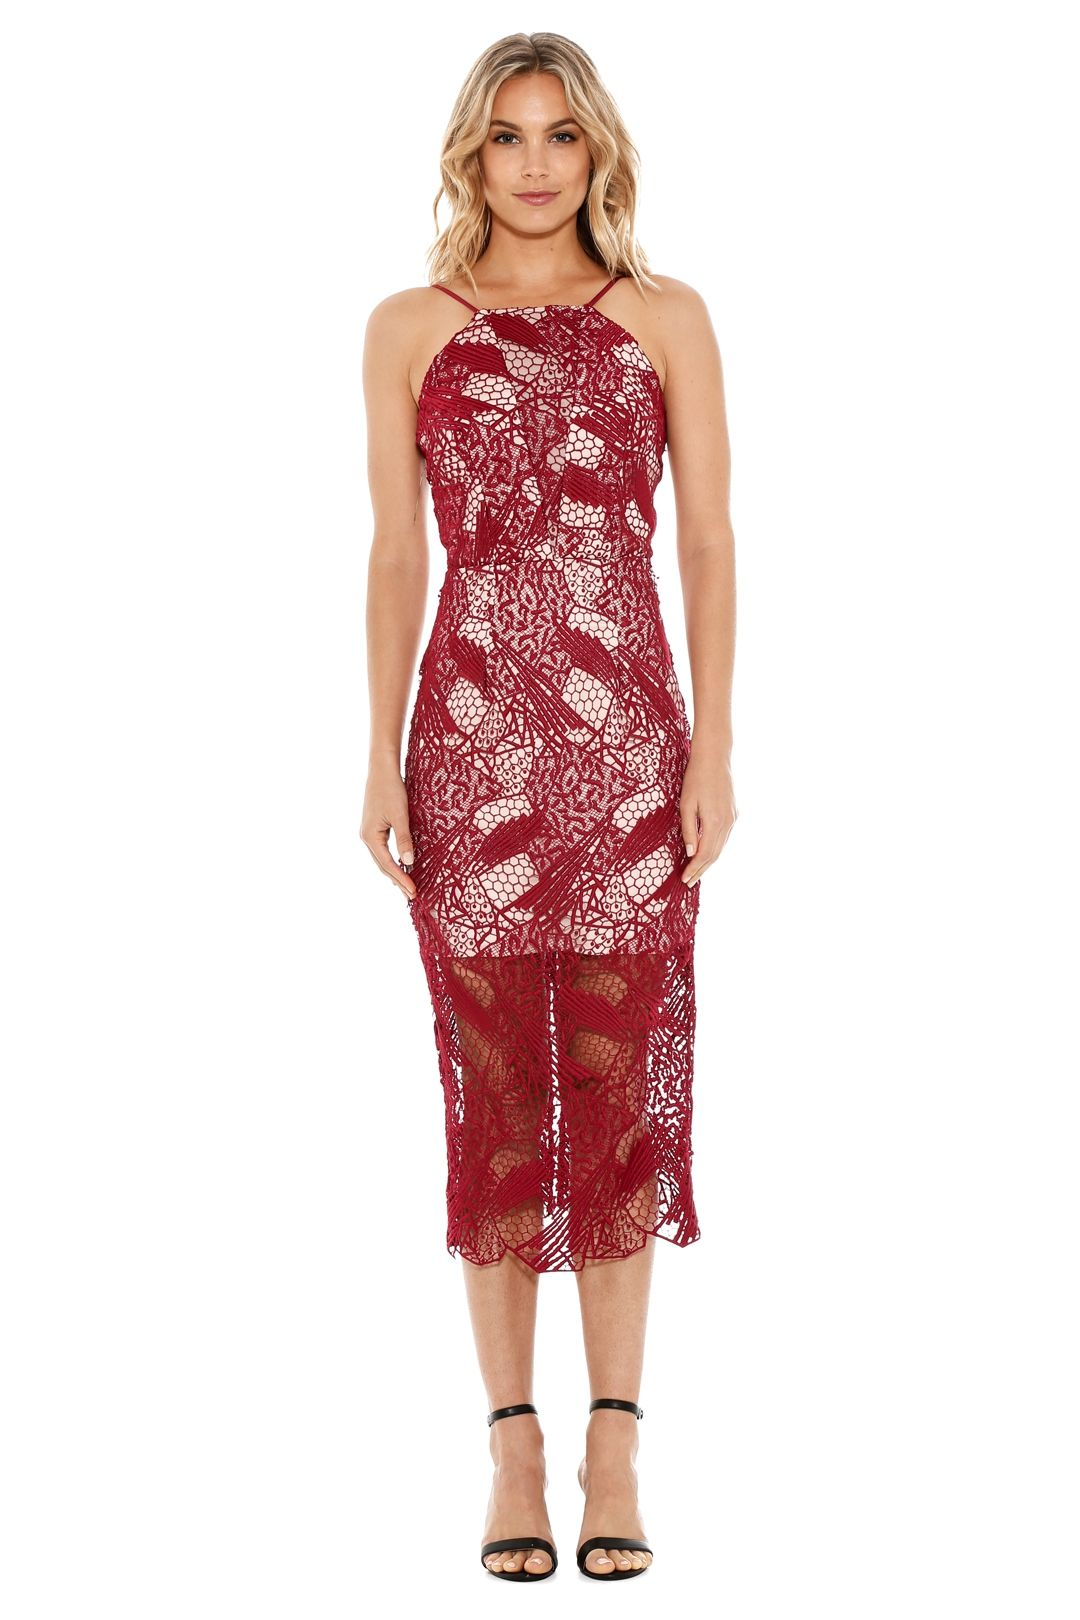 Rodeo Show - The Gwendolyn Dress - Canberry - Front